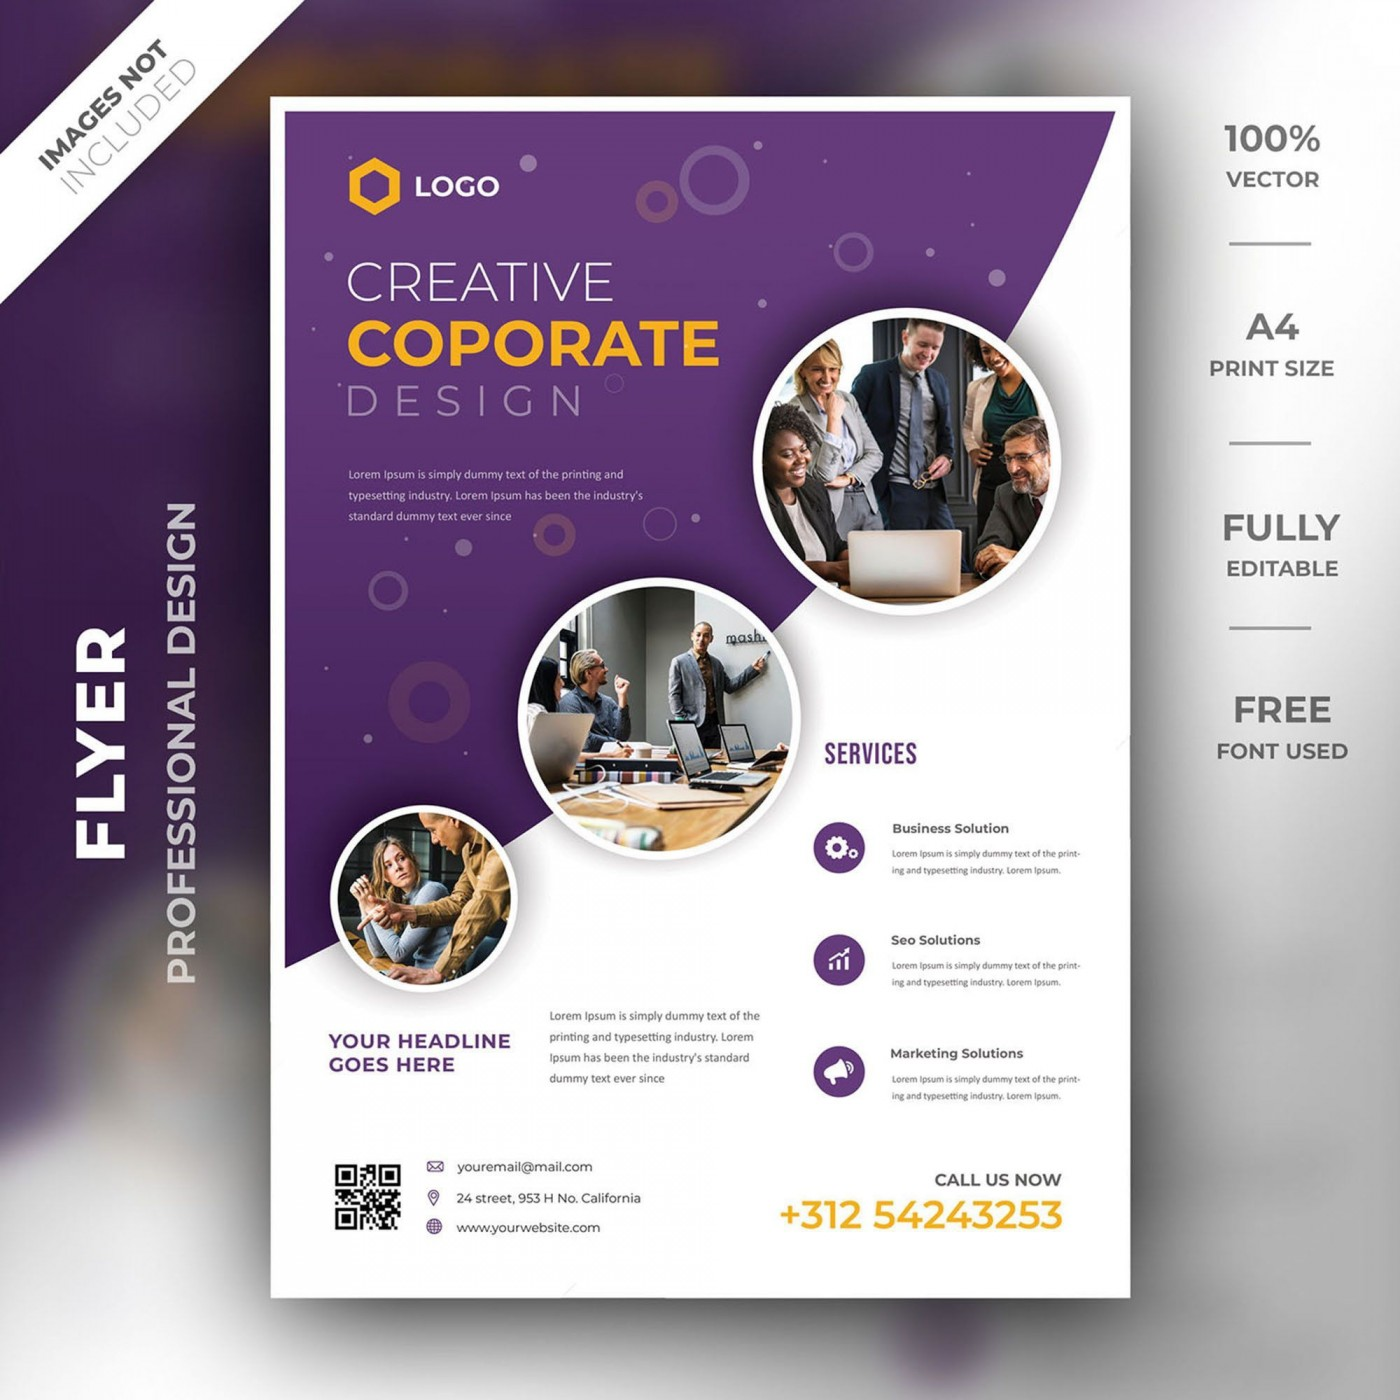 000 Stunning Brochure Template Photoshop Cs6 Free Download Highest Clarity 1400